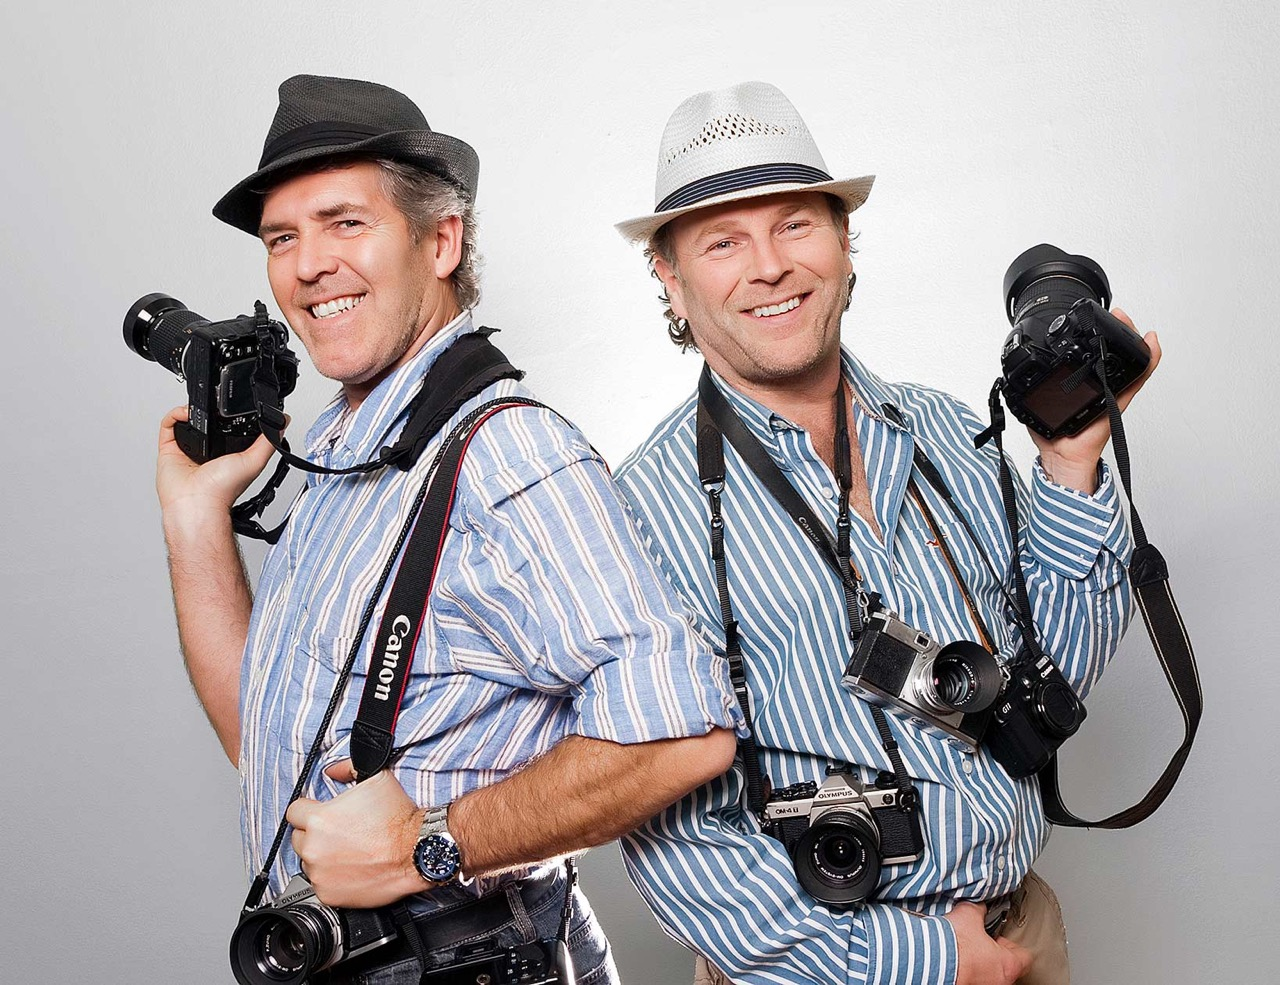 6169-vaughans-guys-with-cameras-1